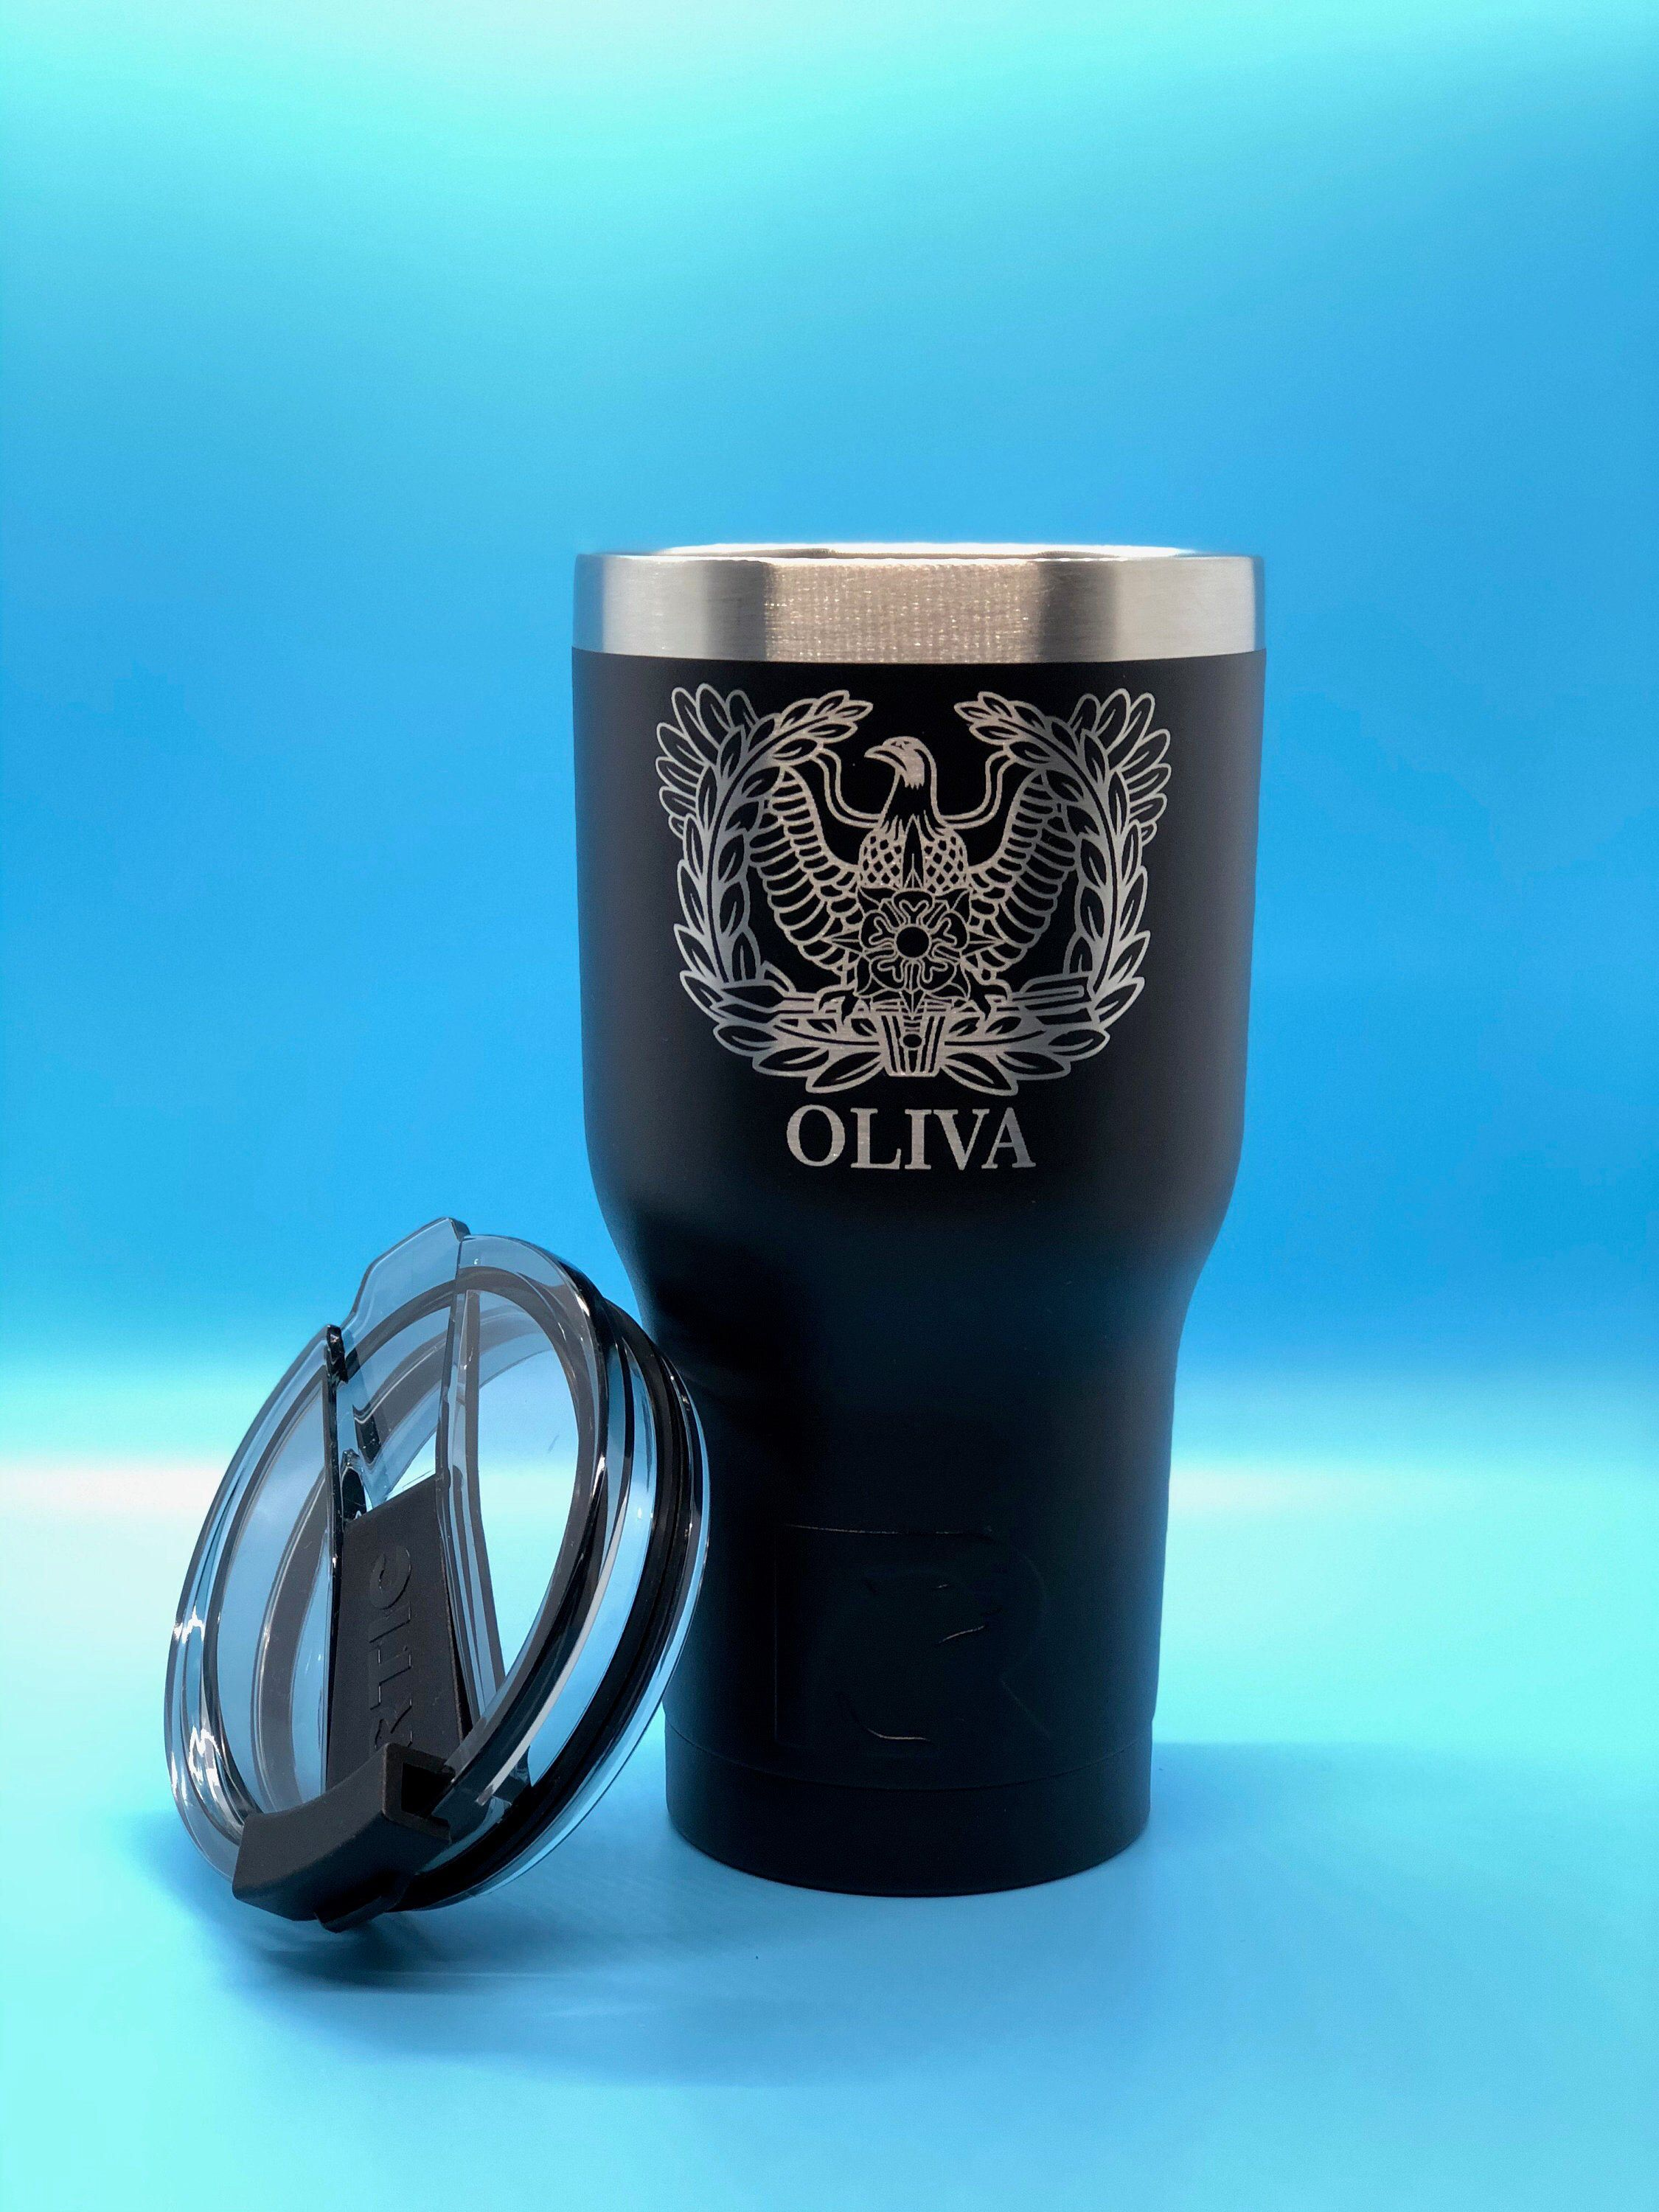 Excited to share this item from my #etsy shop: Custom U.S. Army Warrant Officer 20 ounce laser engraved tumbler with branch, gifts for her/him, retiree gifts, WO #personalized #giftsforhim #giftsforher #usarmy #warrantofficer #tumblers #laserengraved